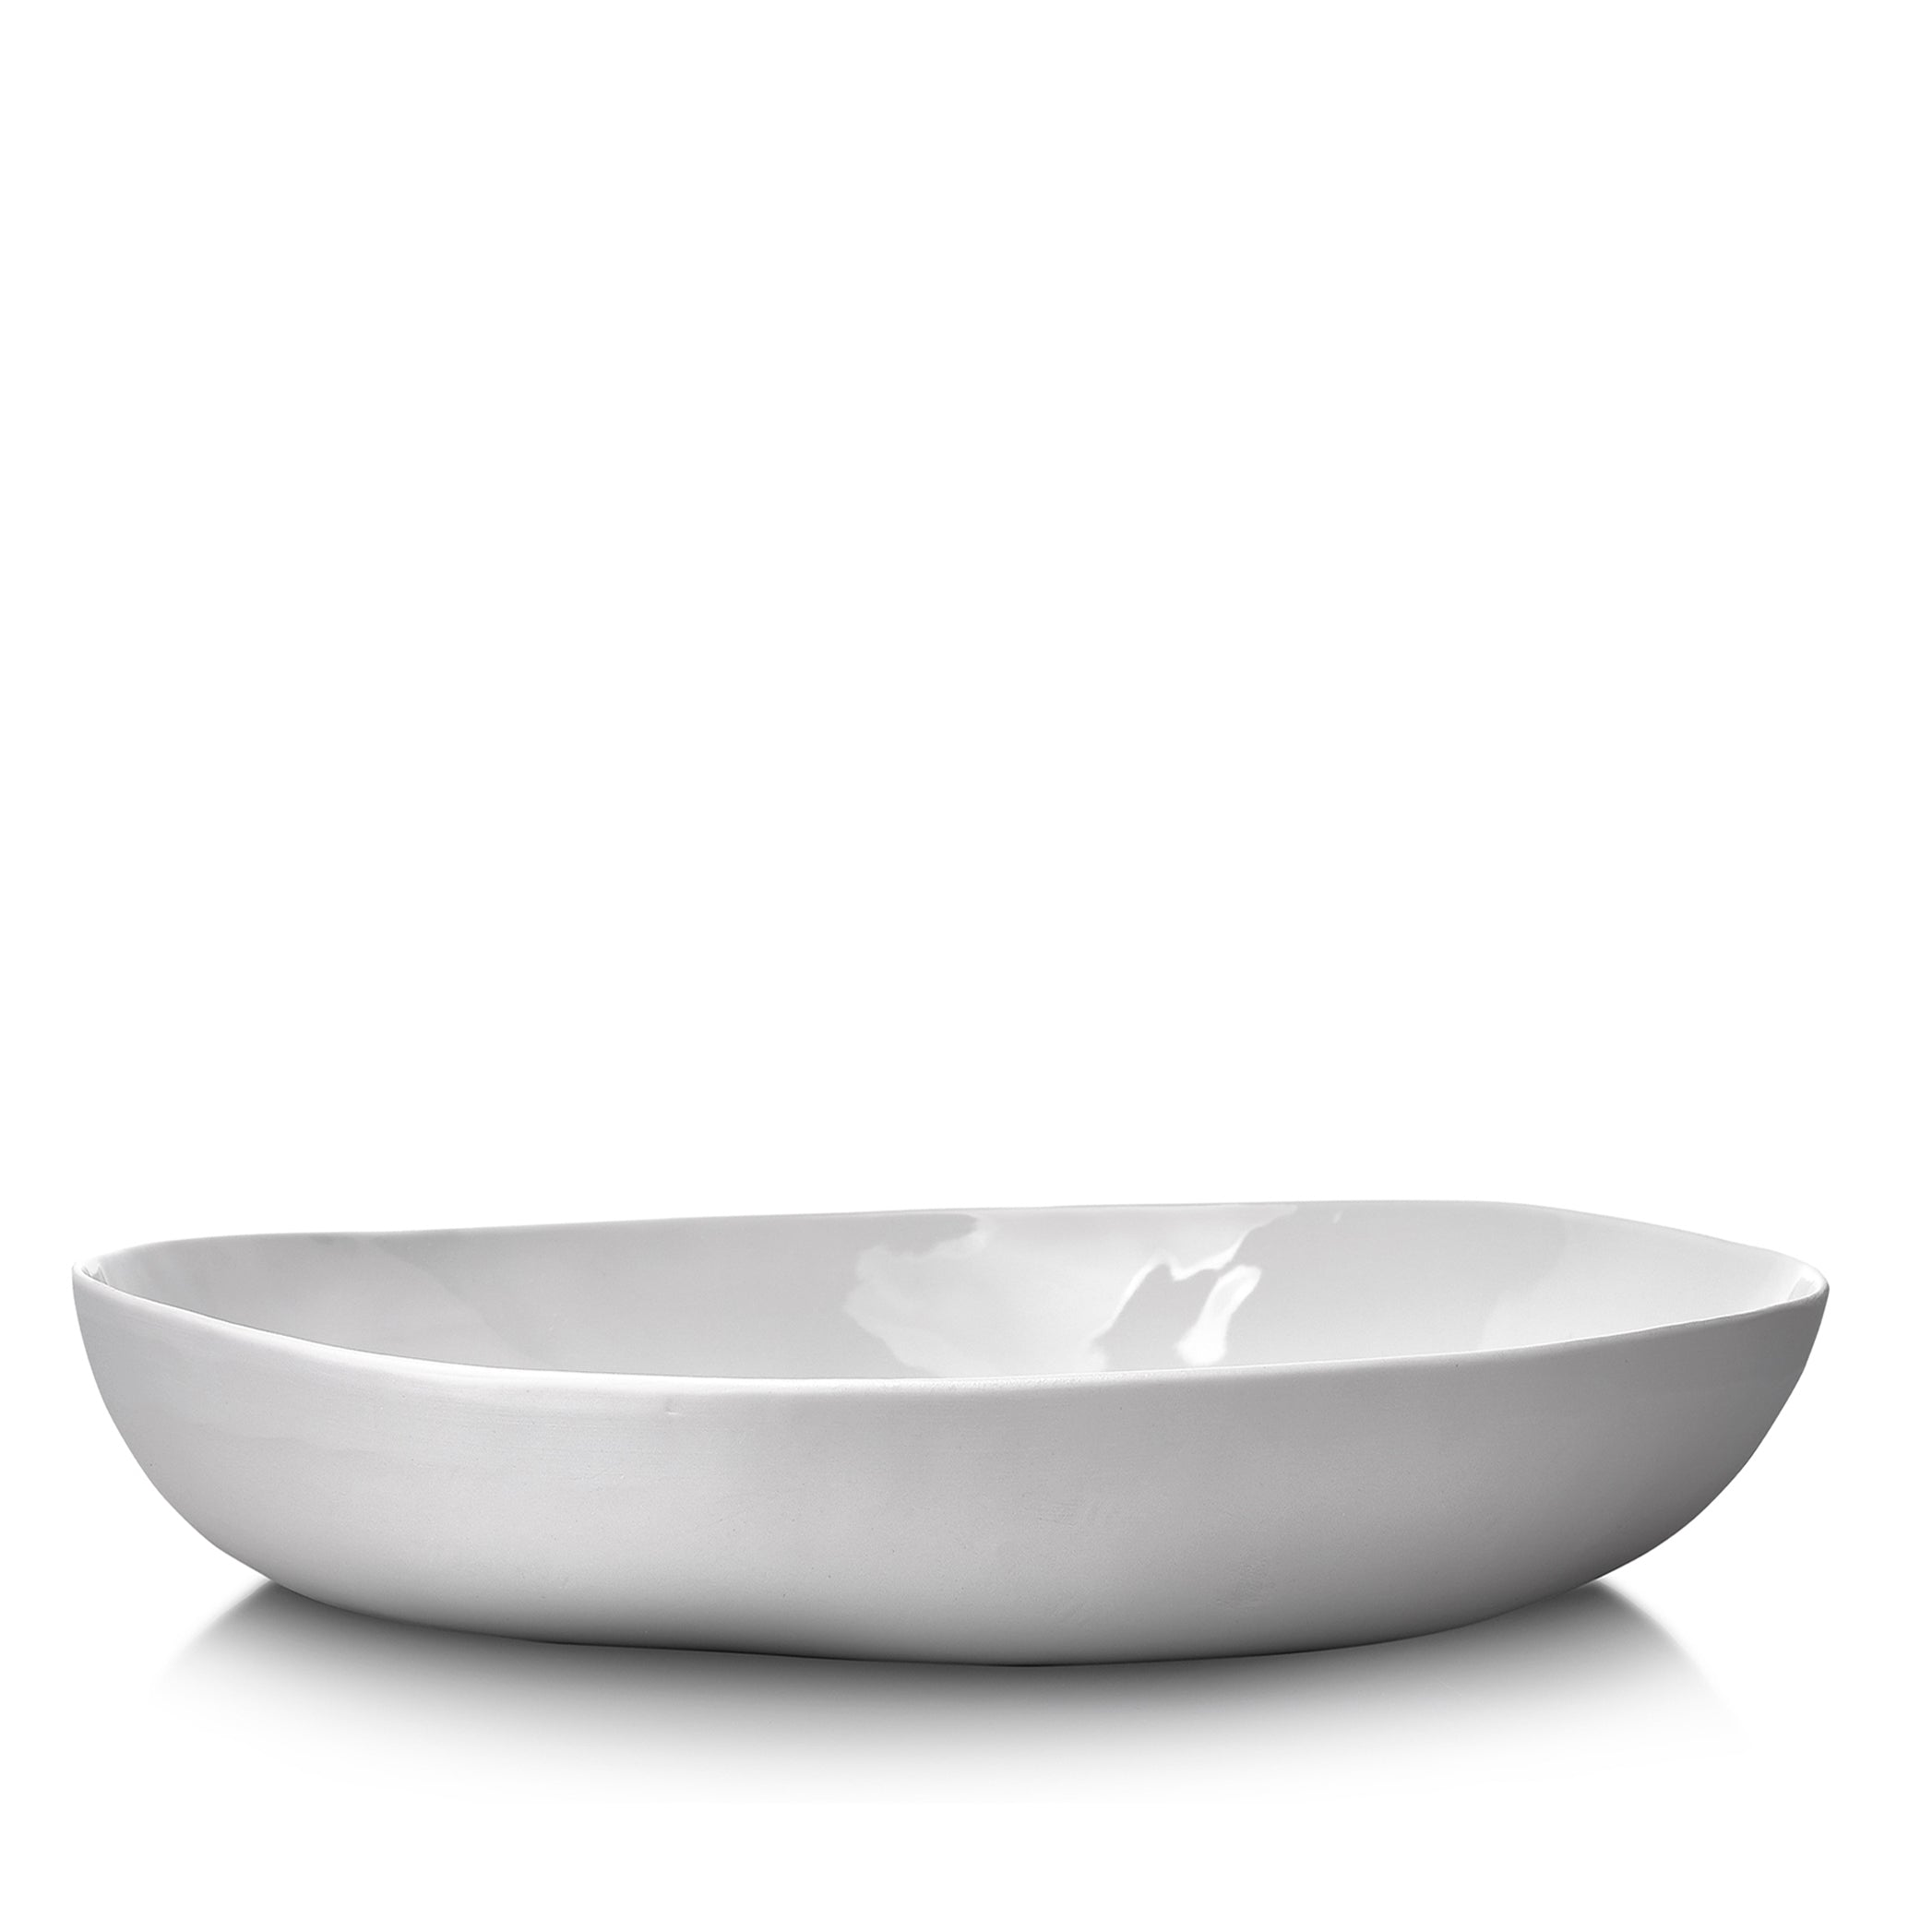 S&B Handmade 35cm Porcelain Salad Bowl with Plain Rim